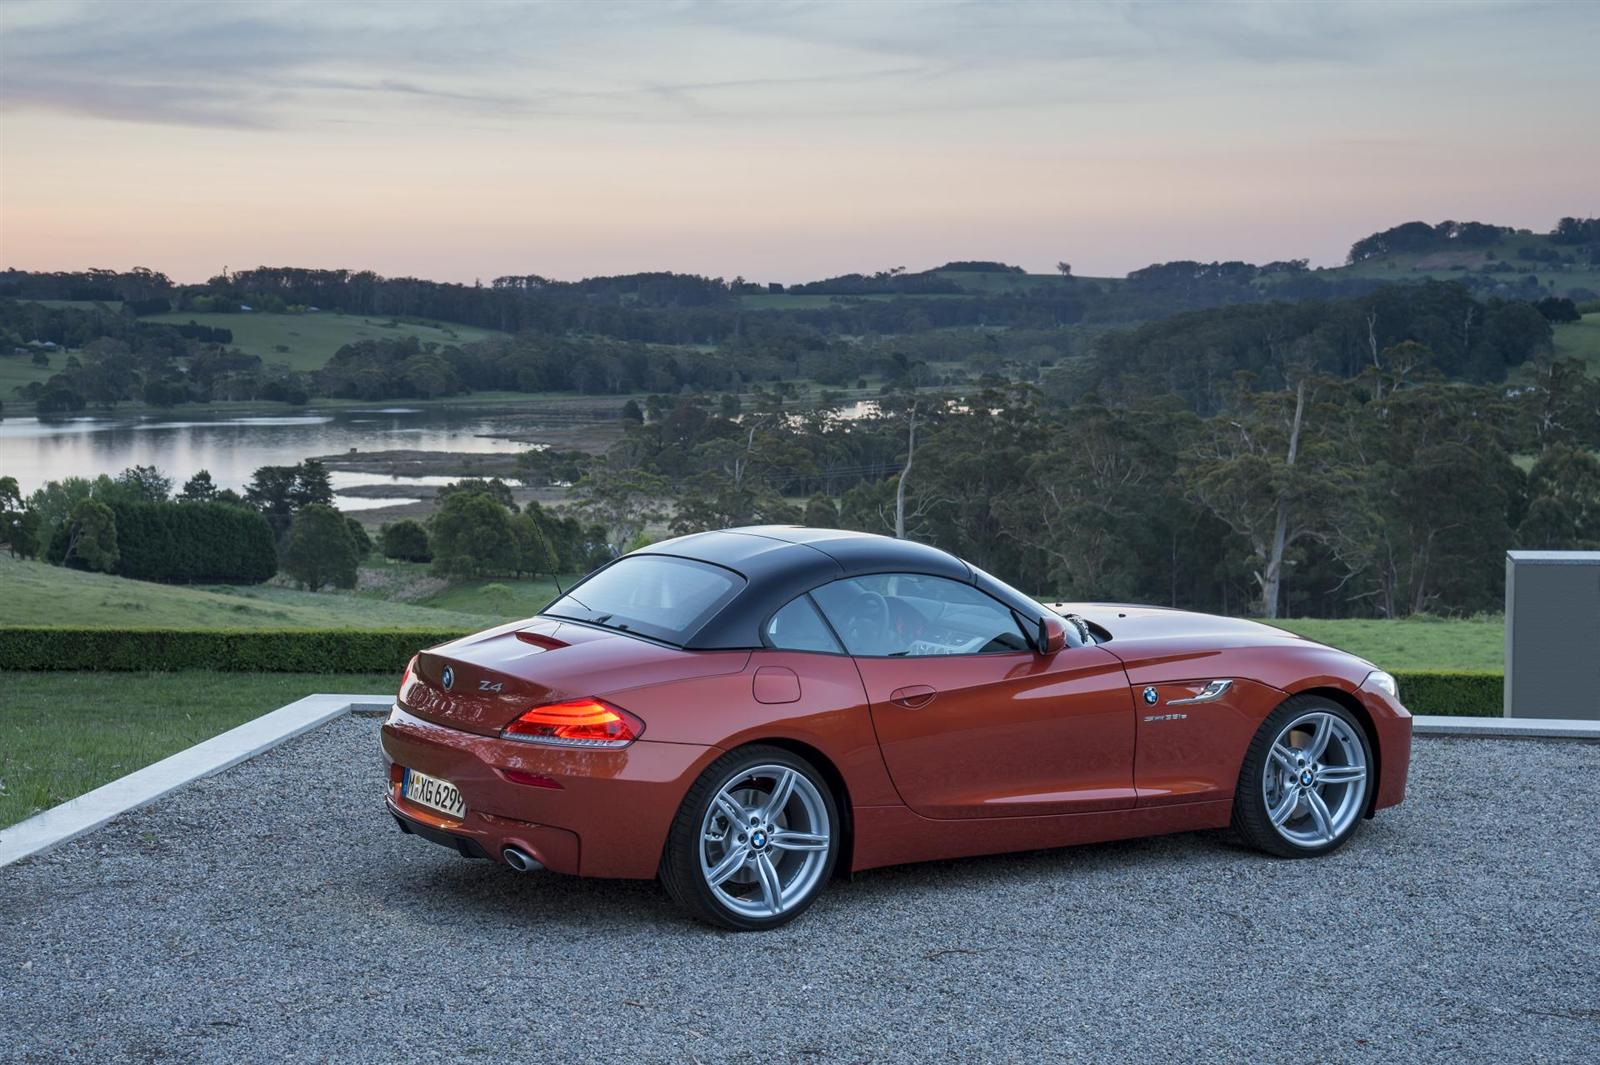 2013 BMW Z4 Images. Photo: BMW-Z4-Roadster-2013-Roadster-Image-07 ...